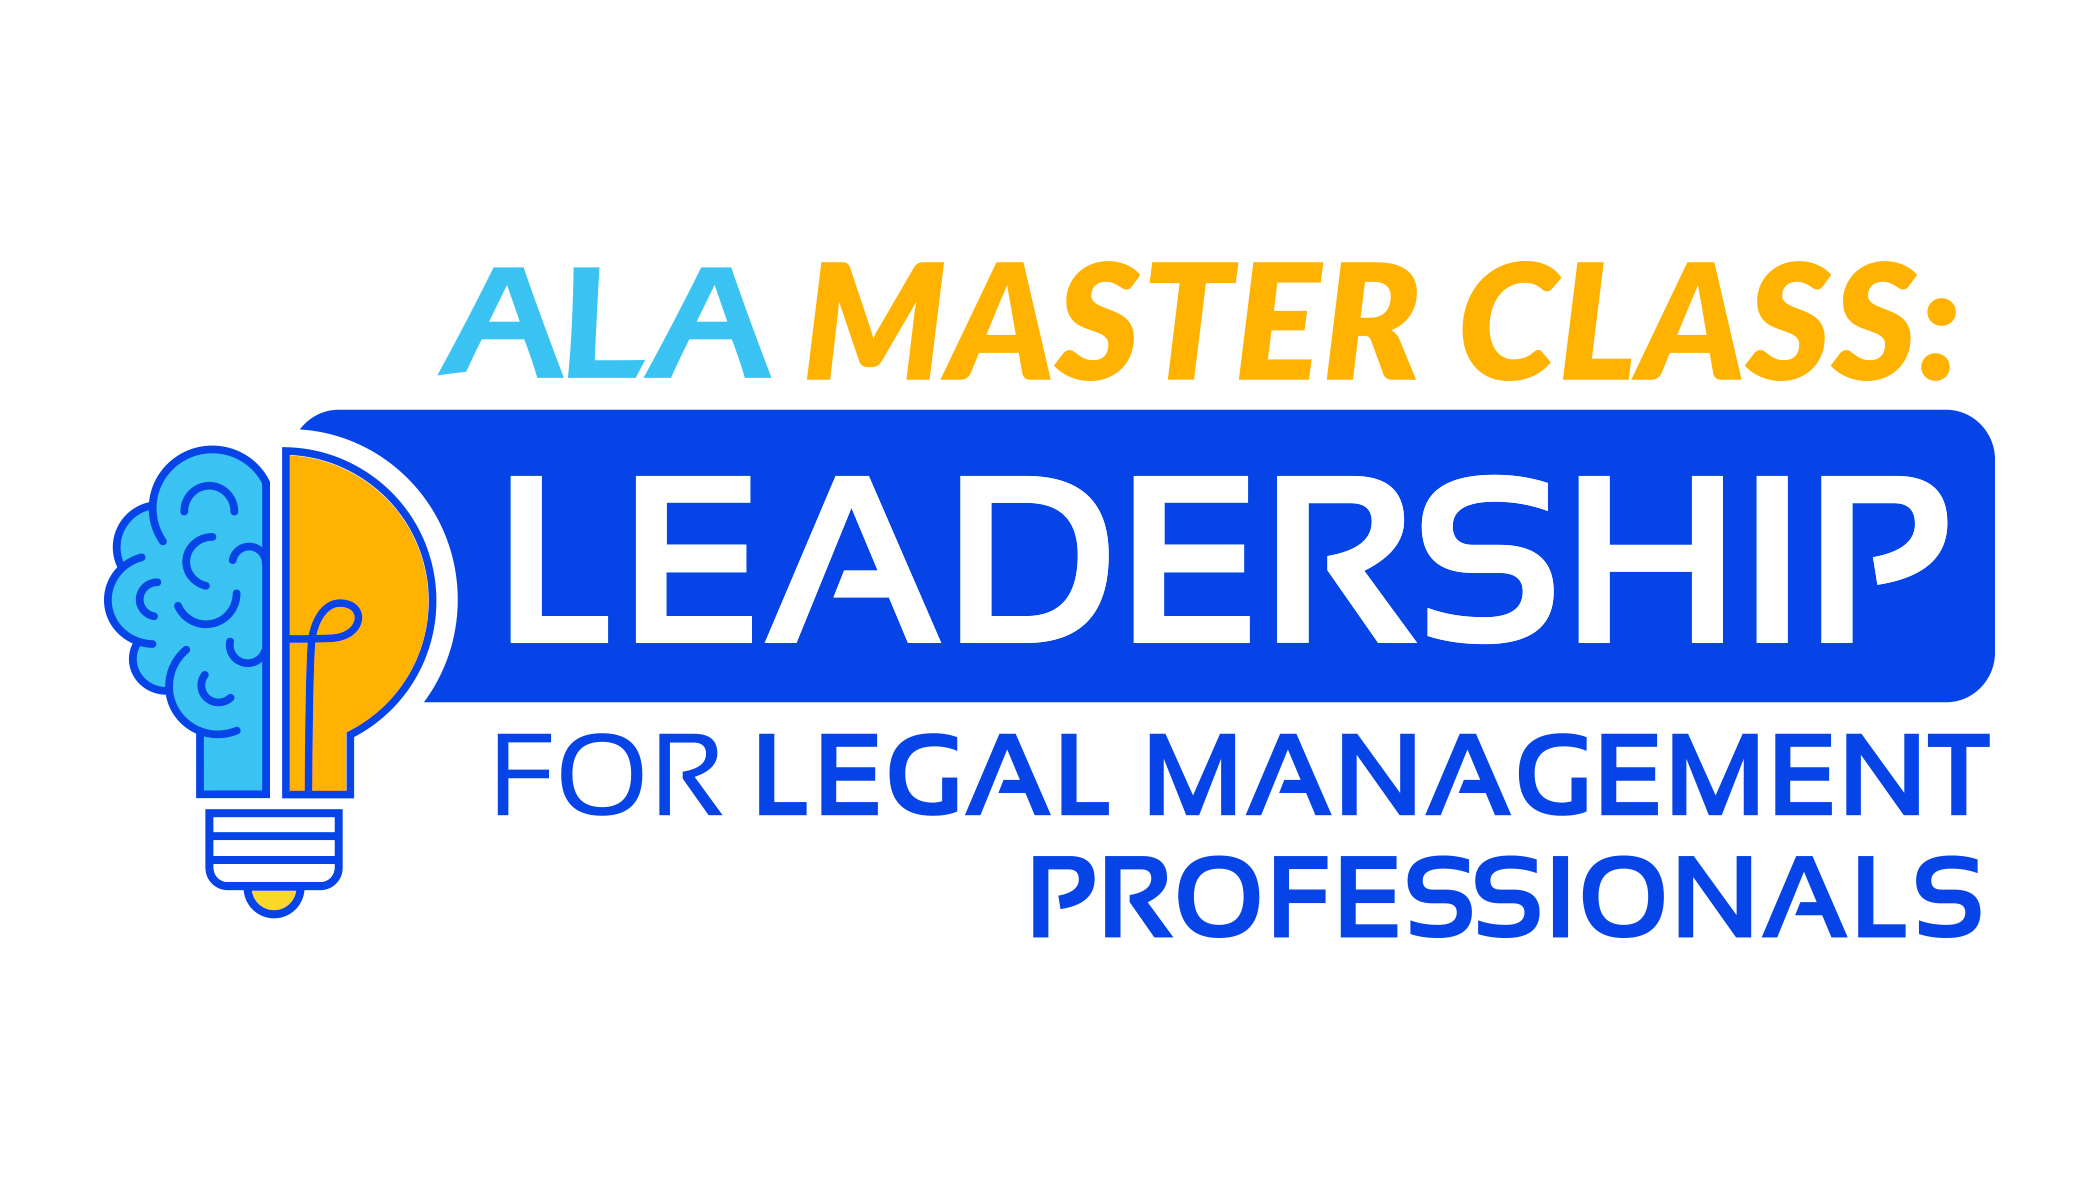 ALA Master Class Leadership for Legal Management Professionals Logo-color-CMYK